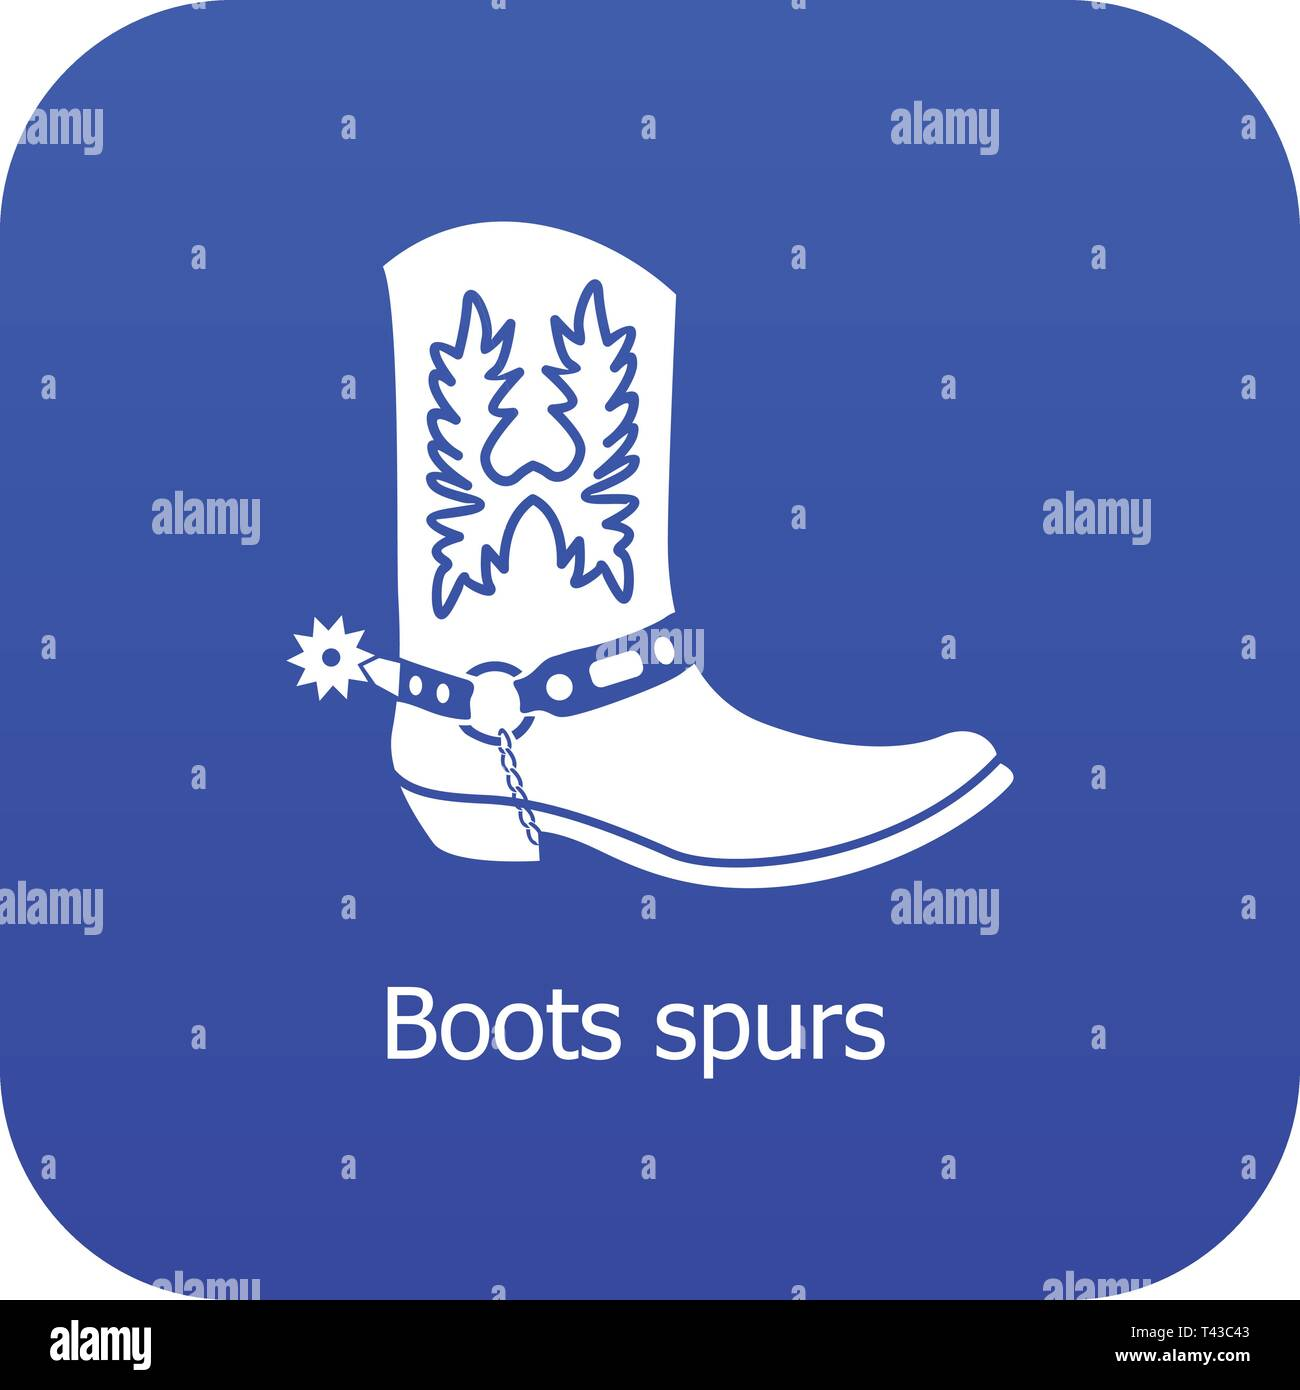 cbf1bd2dbdb Heel Spurs Stock Photos & Heel Spurs Stock Images - Alamy